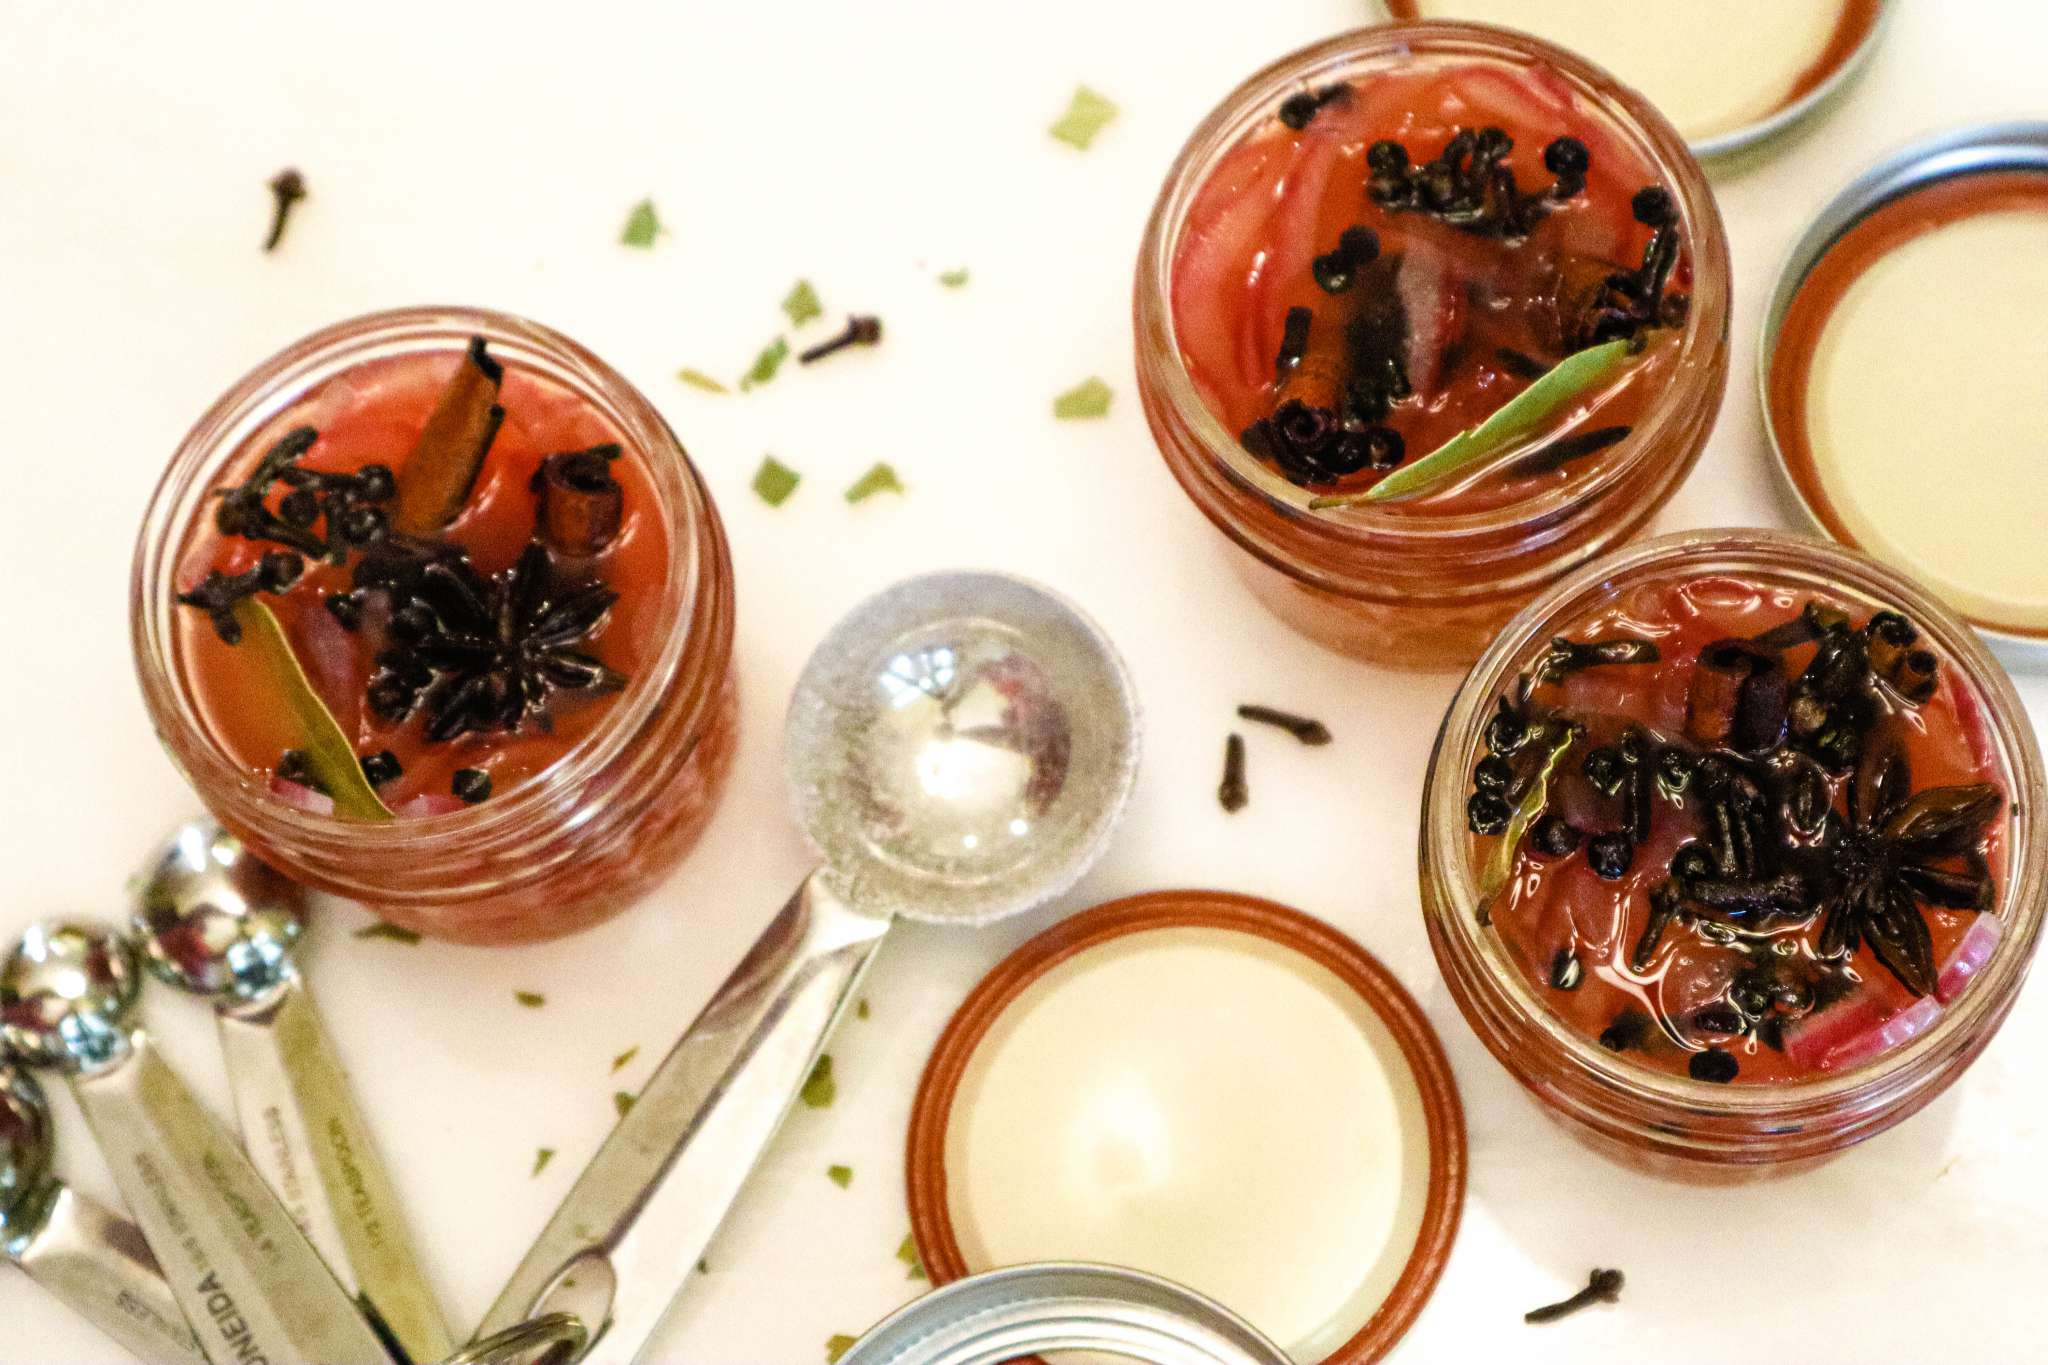 McCormicj Cinnamon and McCormick cloves for cinnamon and spice pickled onions